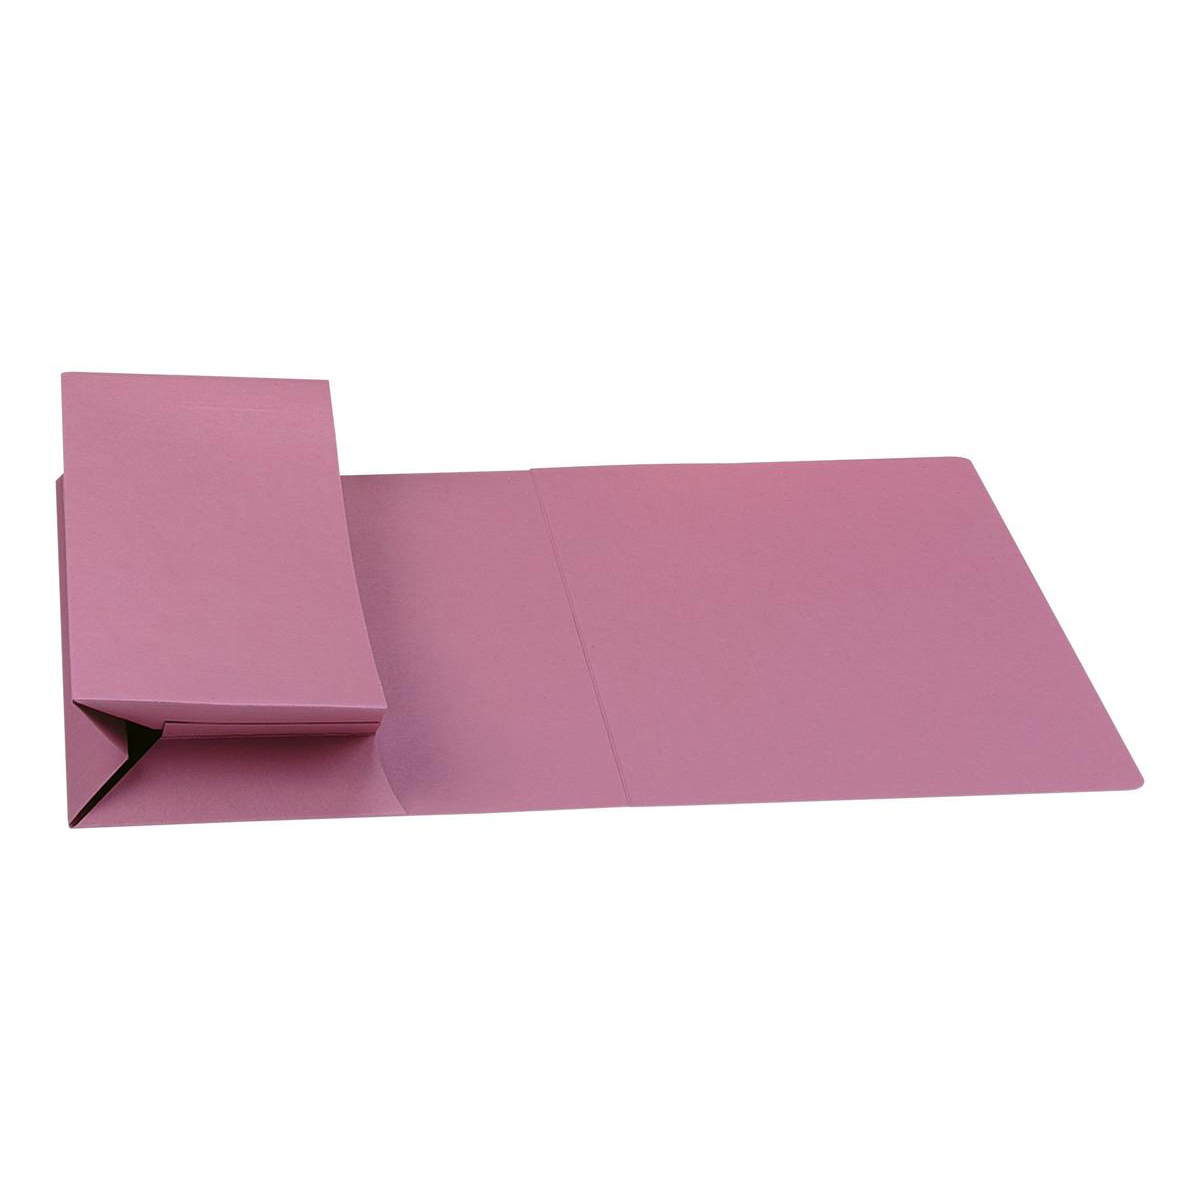 Document Wallets Guildhall Probate Wallets Manilla 315gsm 75mm Foolscap Pink Ref PRW2-PNKZ Pack 25